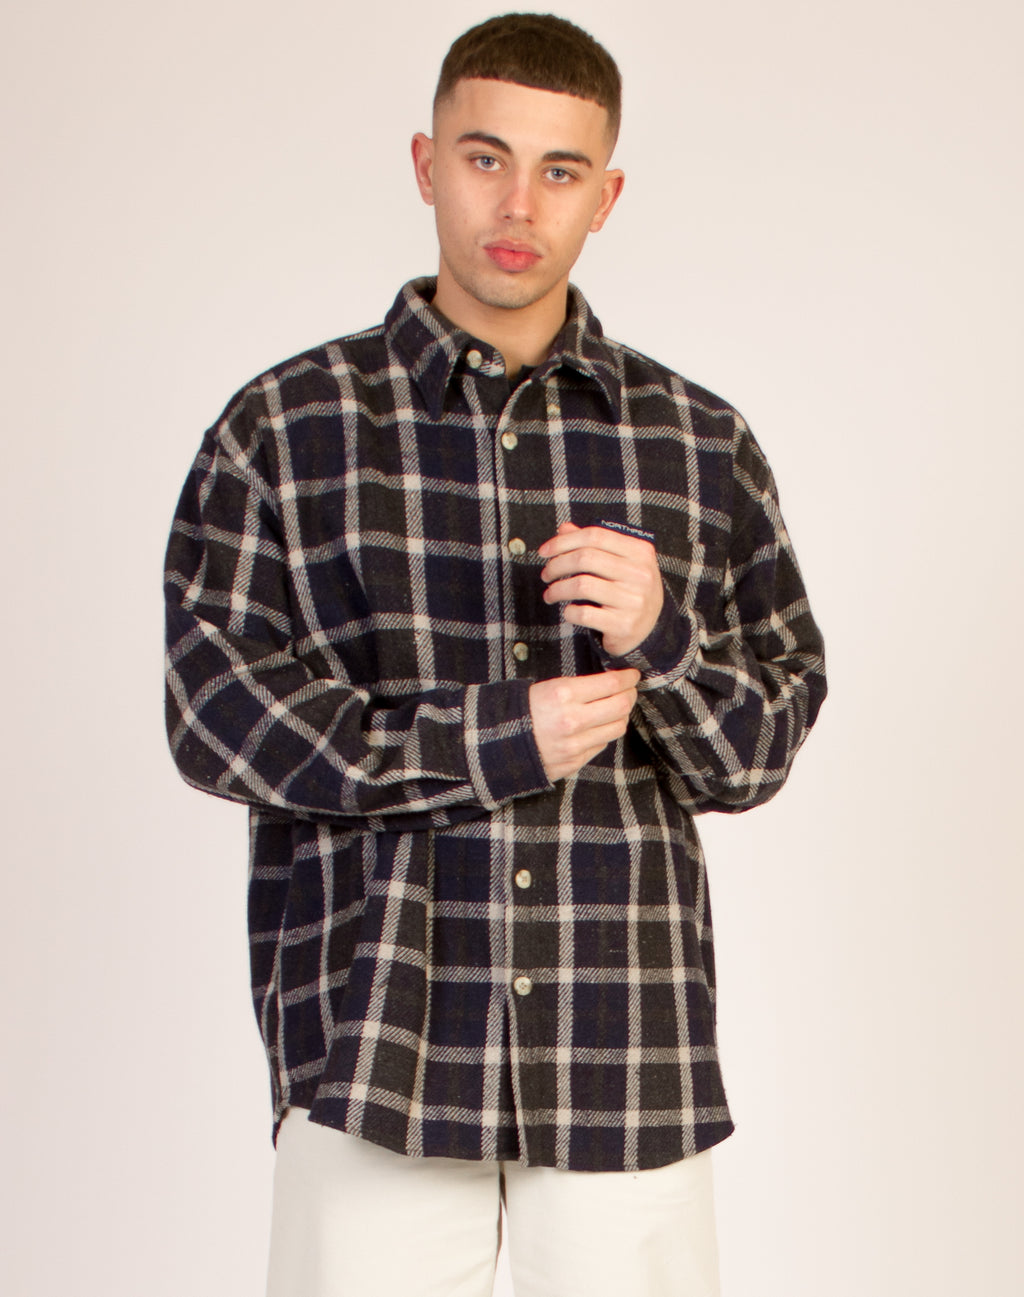 NAVY AND KHAKI CHECKERED SHIRT